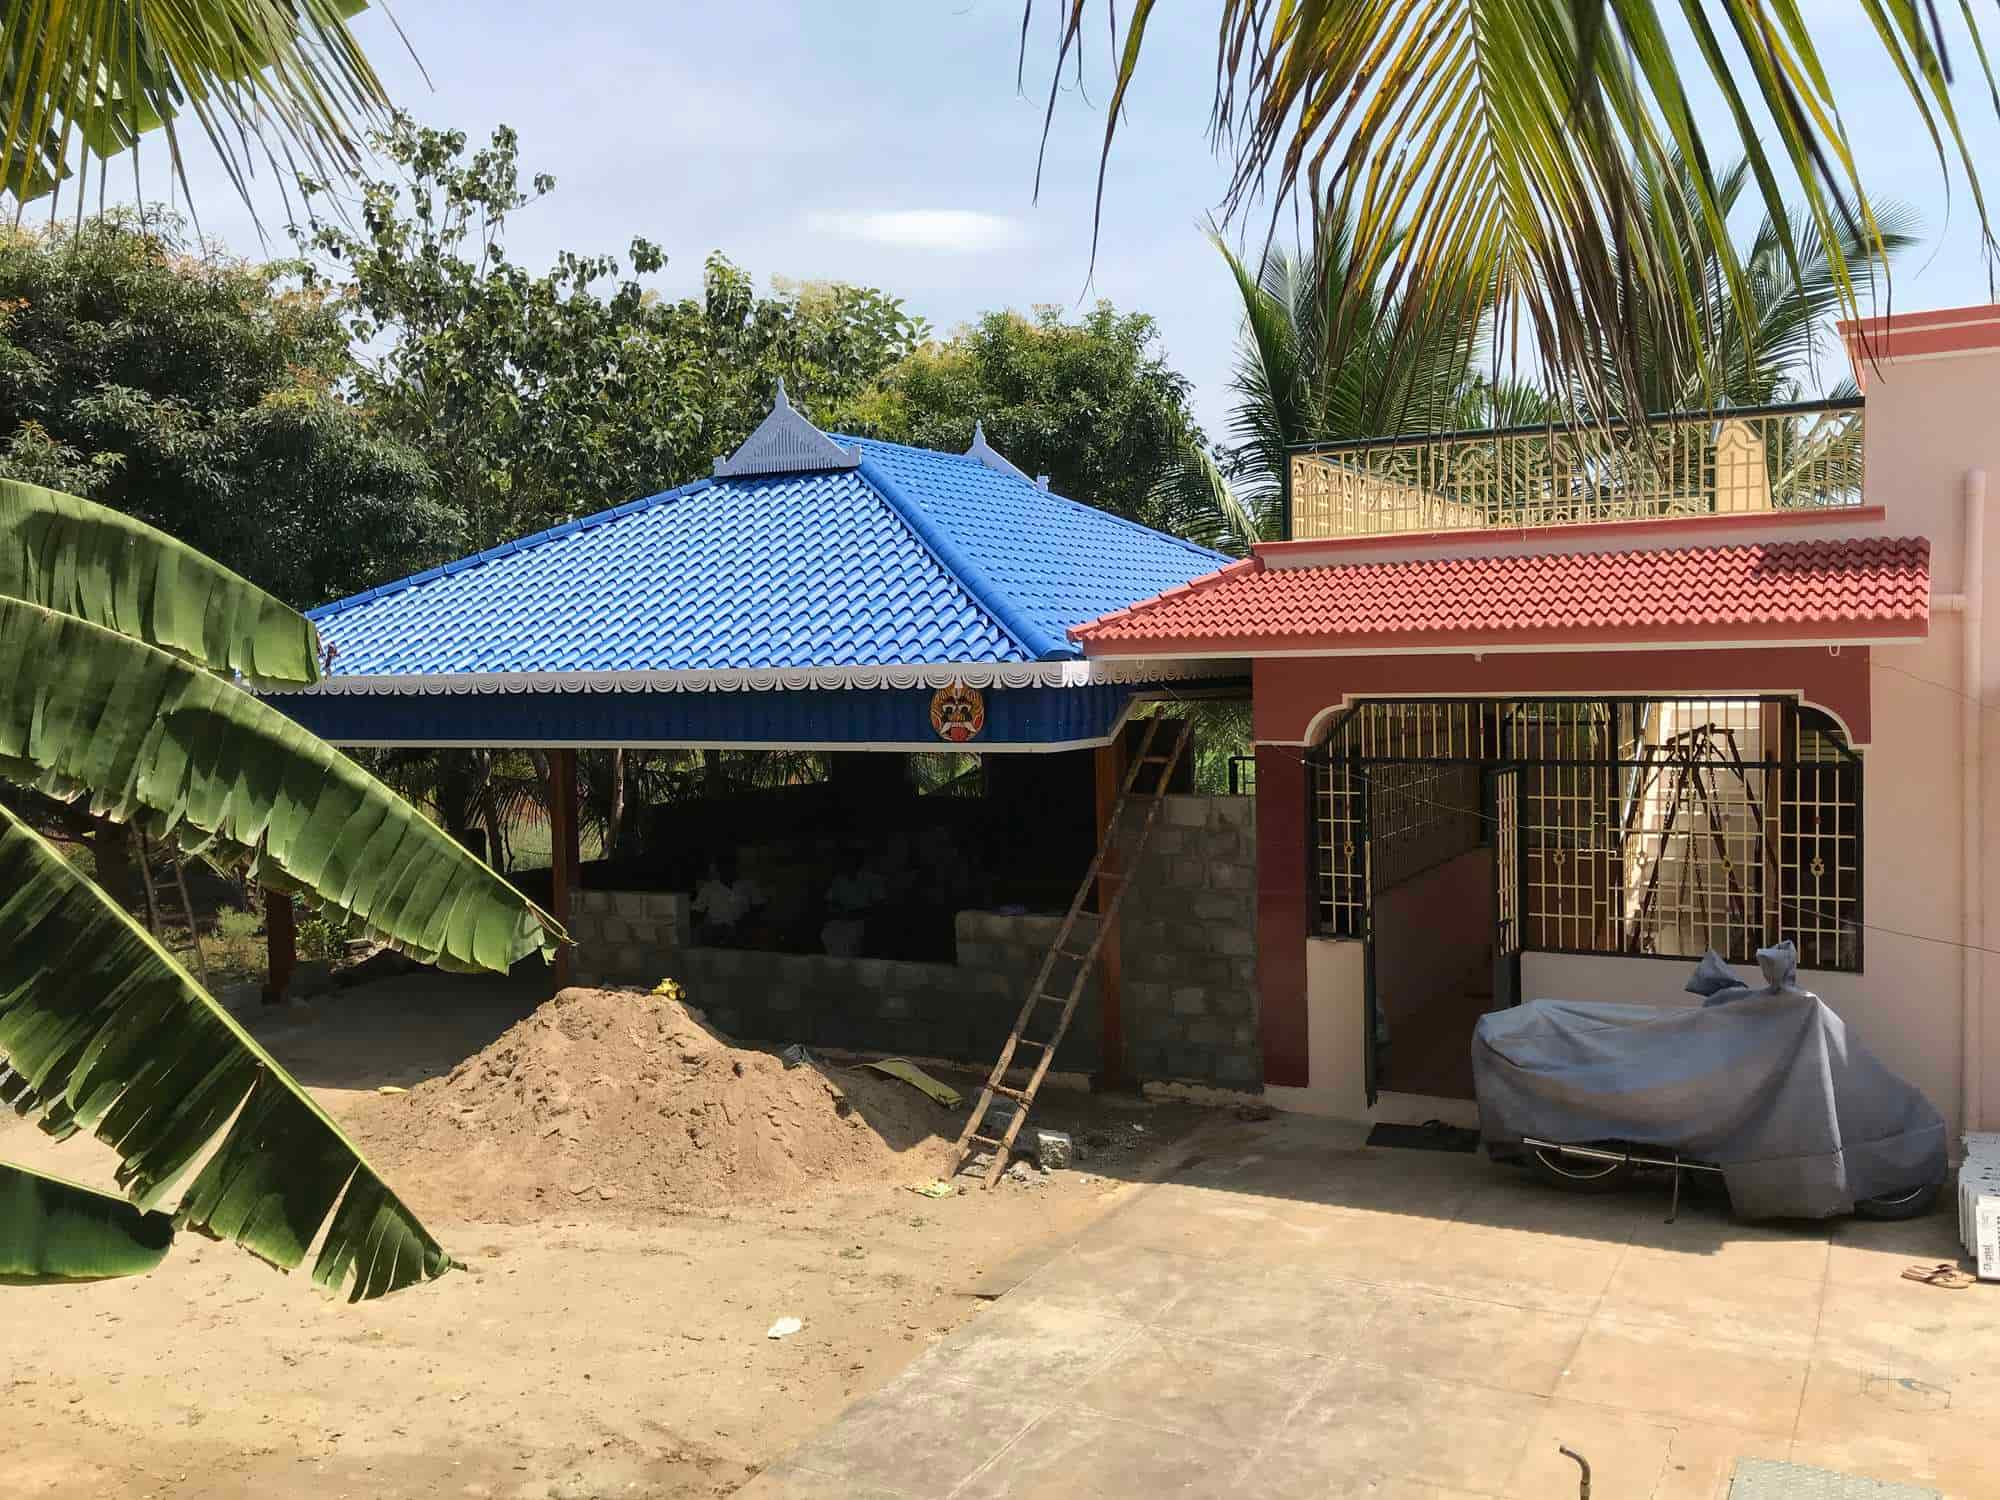 Roofing Sheet Dealers In Salem र फ ग श ट ड लर स स ल म Best Roofing Sheets Justdial